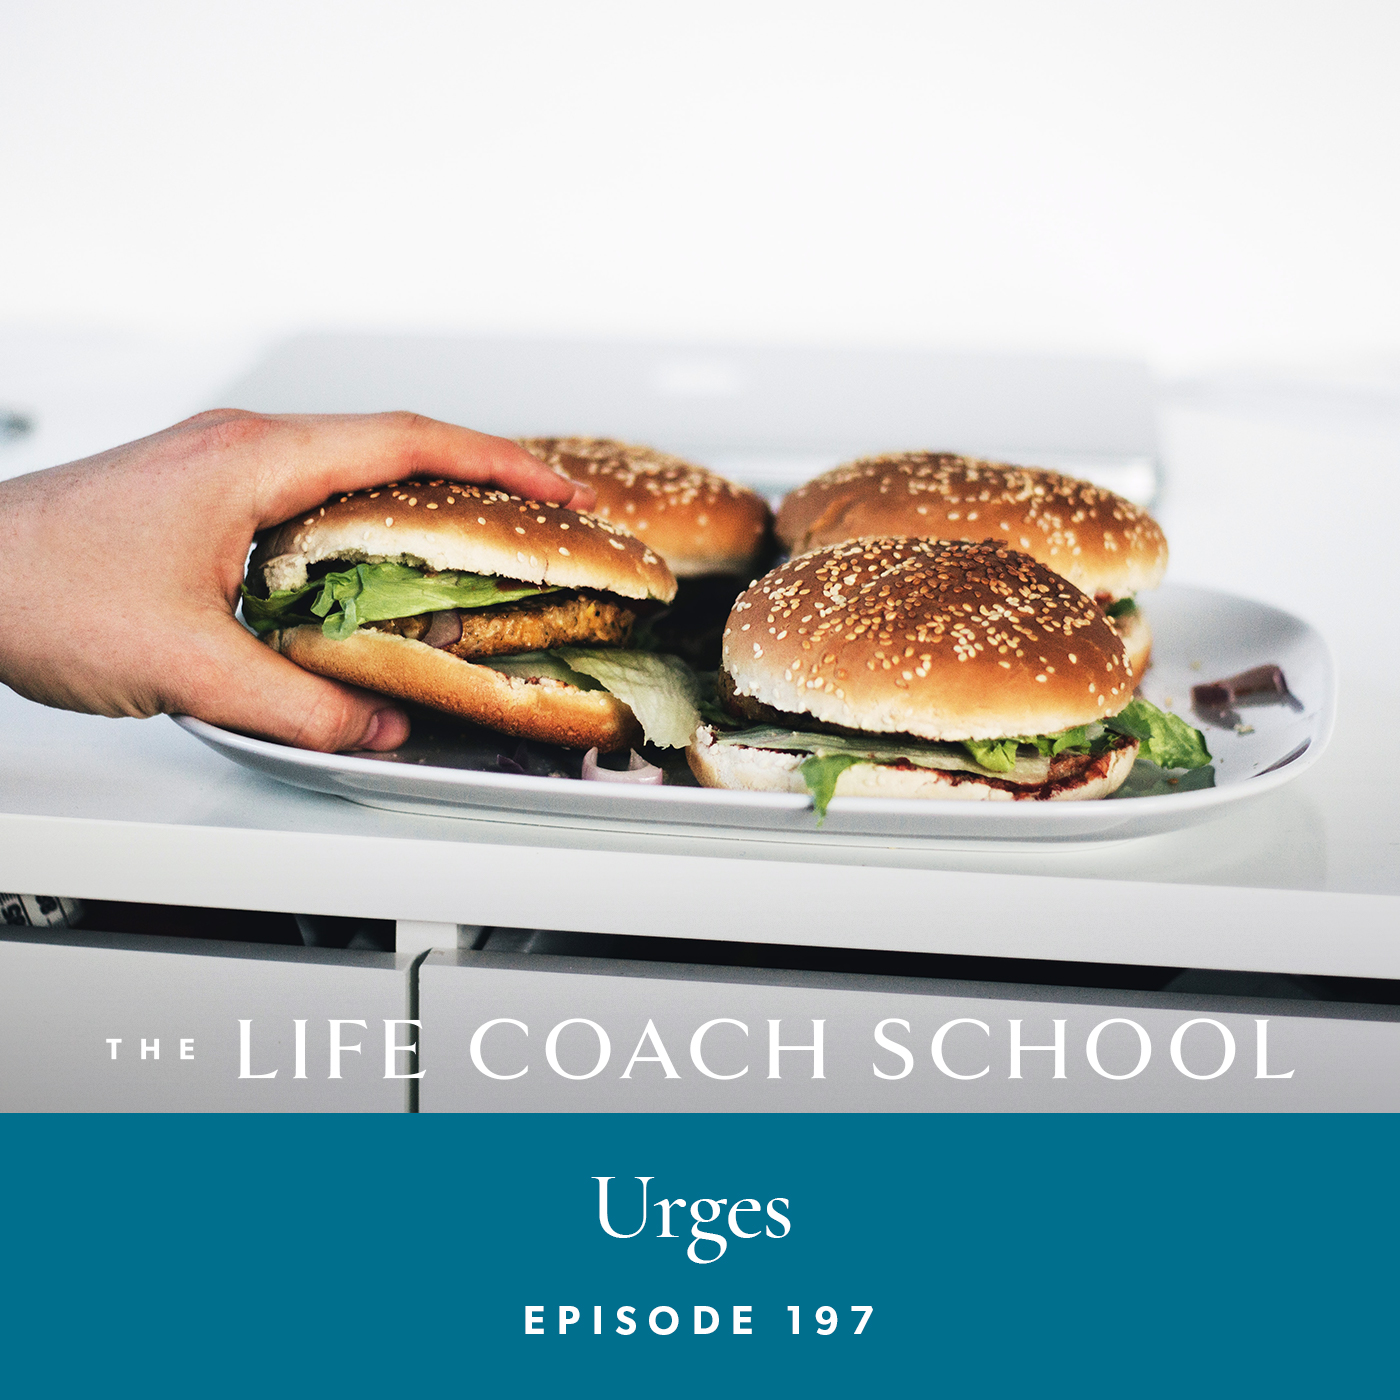 The Life Coach School Podcast with Brooke Castillo | Episode 197 | Urges